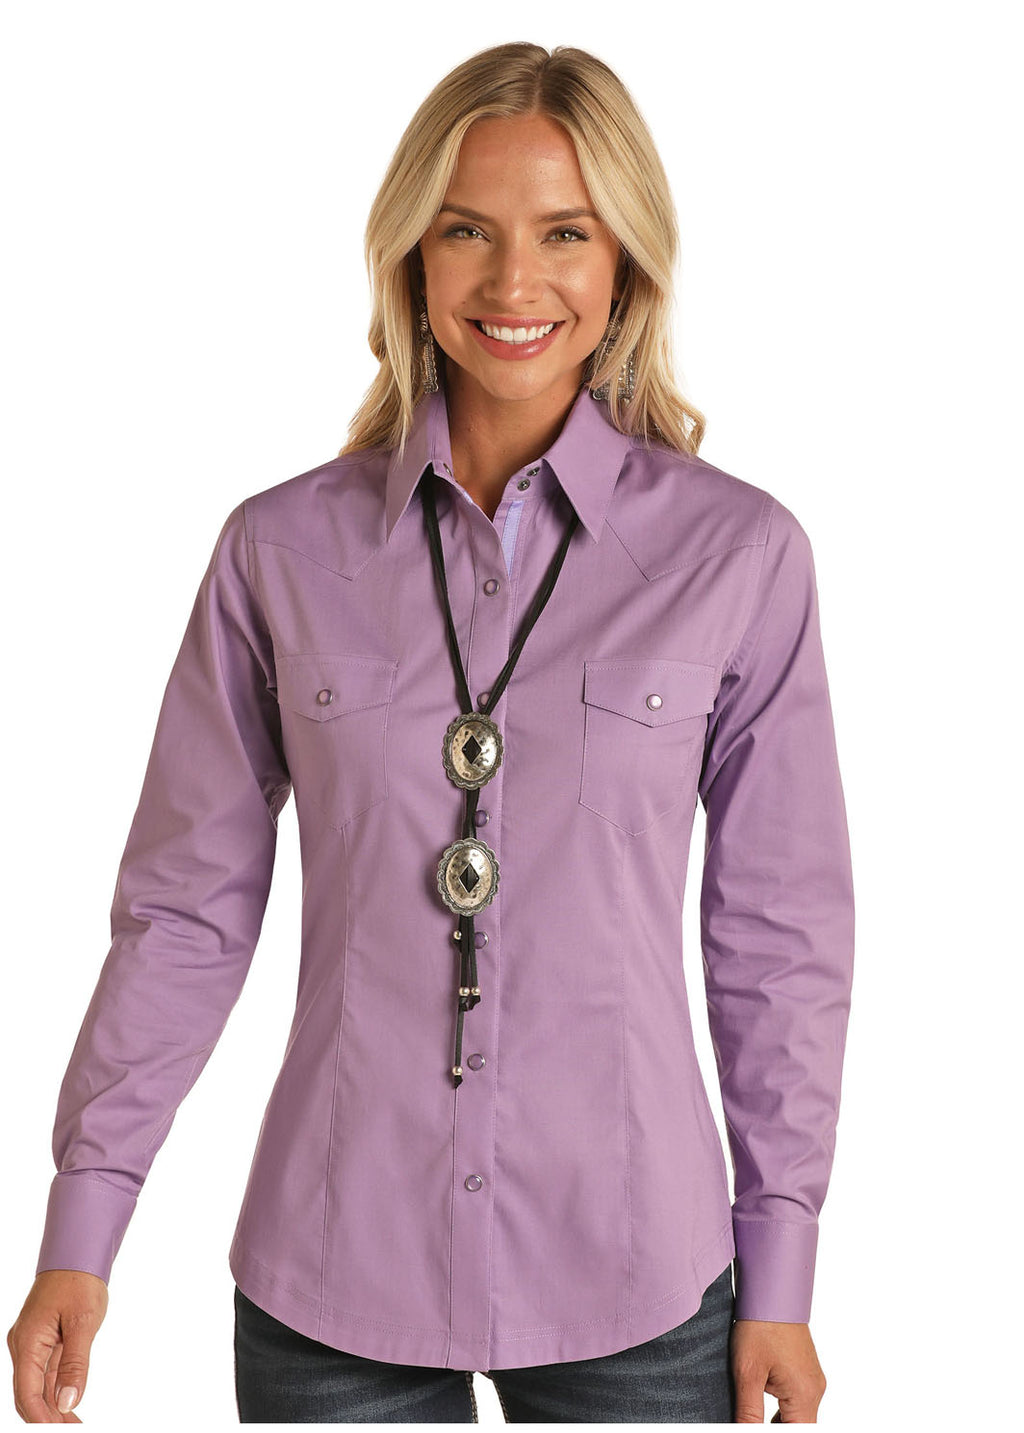 Panhandle Long Sleeved Shirt - Violet (22S8041)